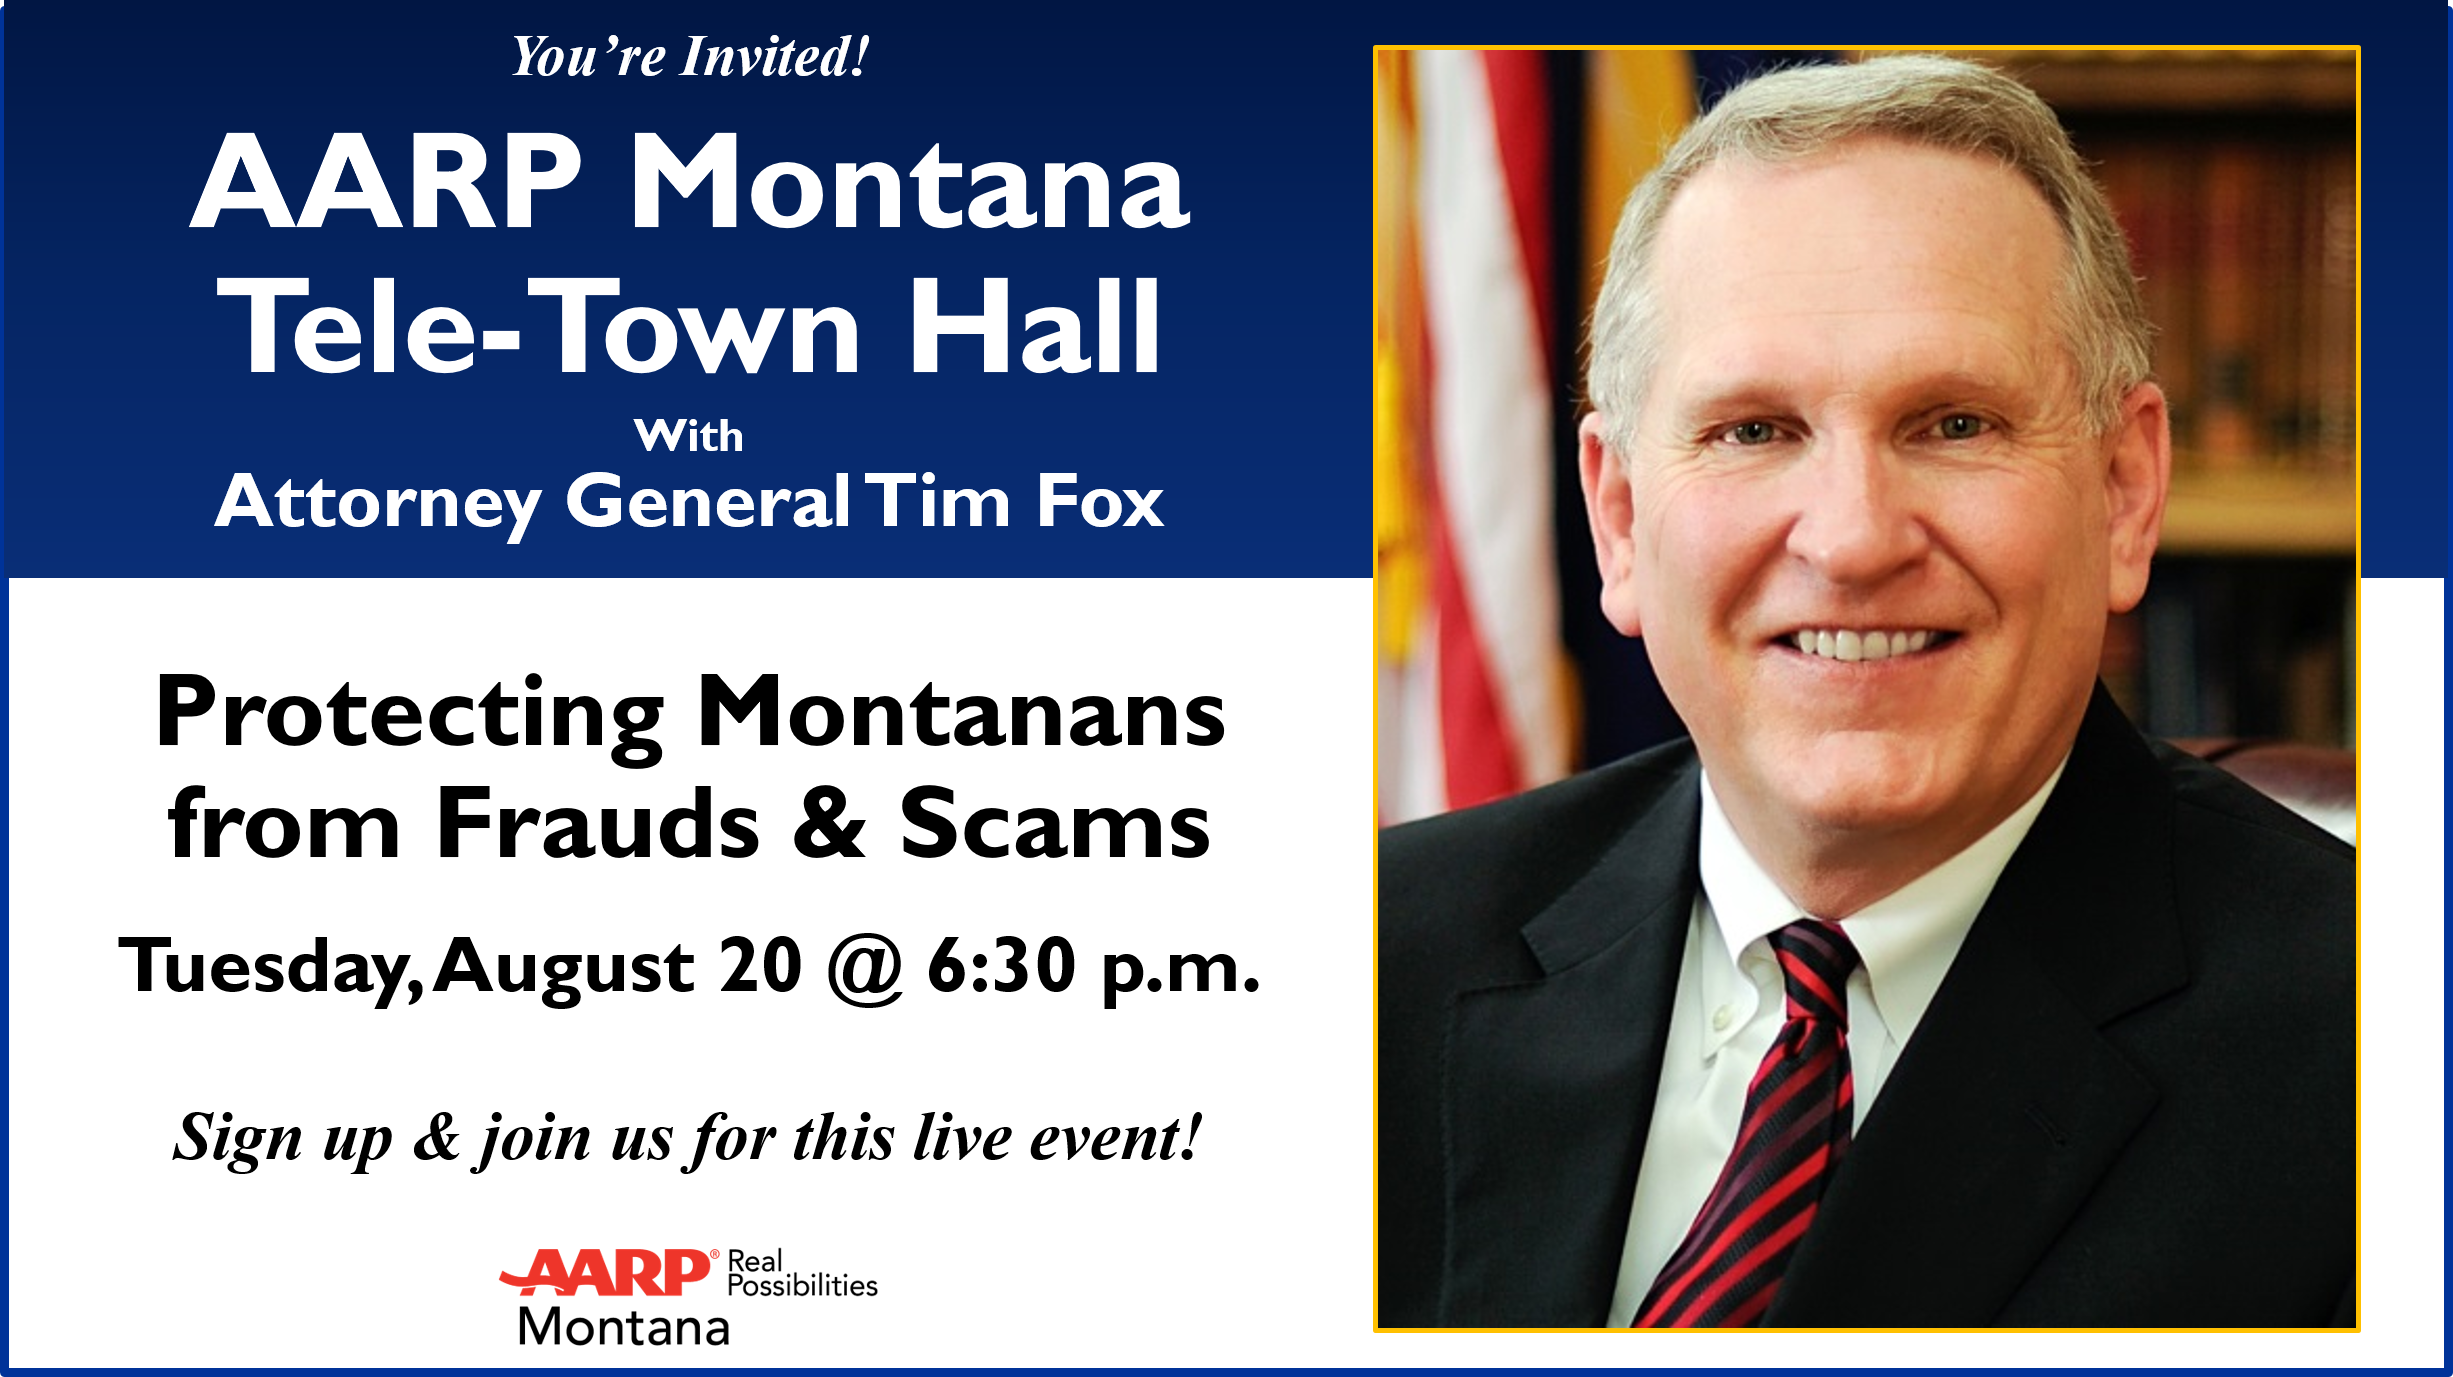 Attorney General Tim Fox to discuss Fraud Prevention and Consumer Protection with Montanans